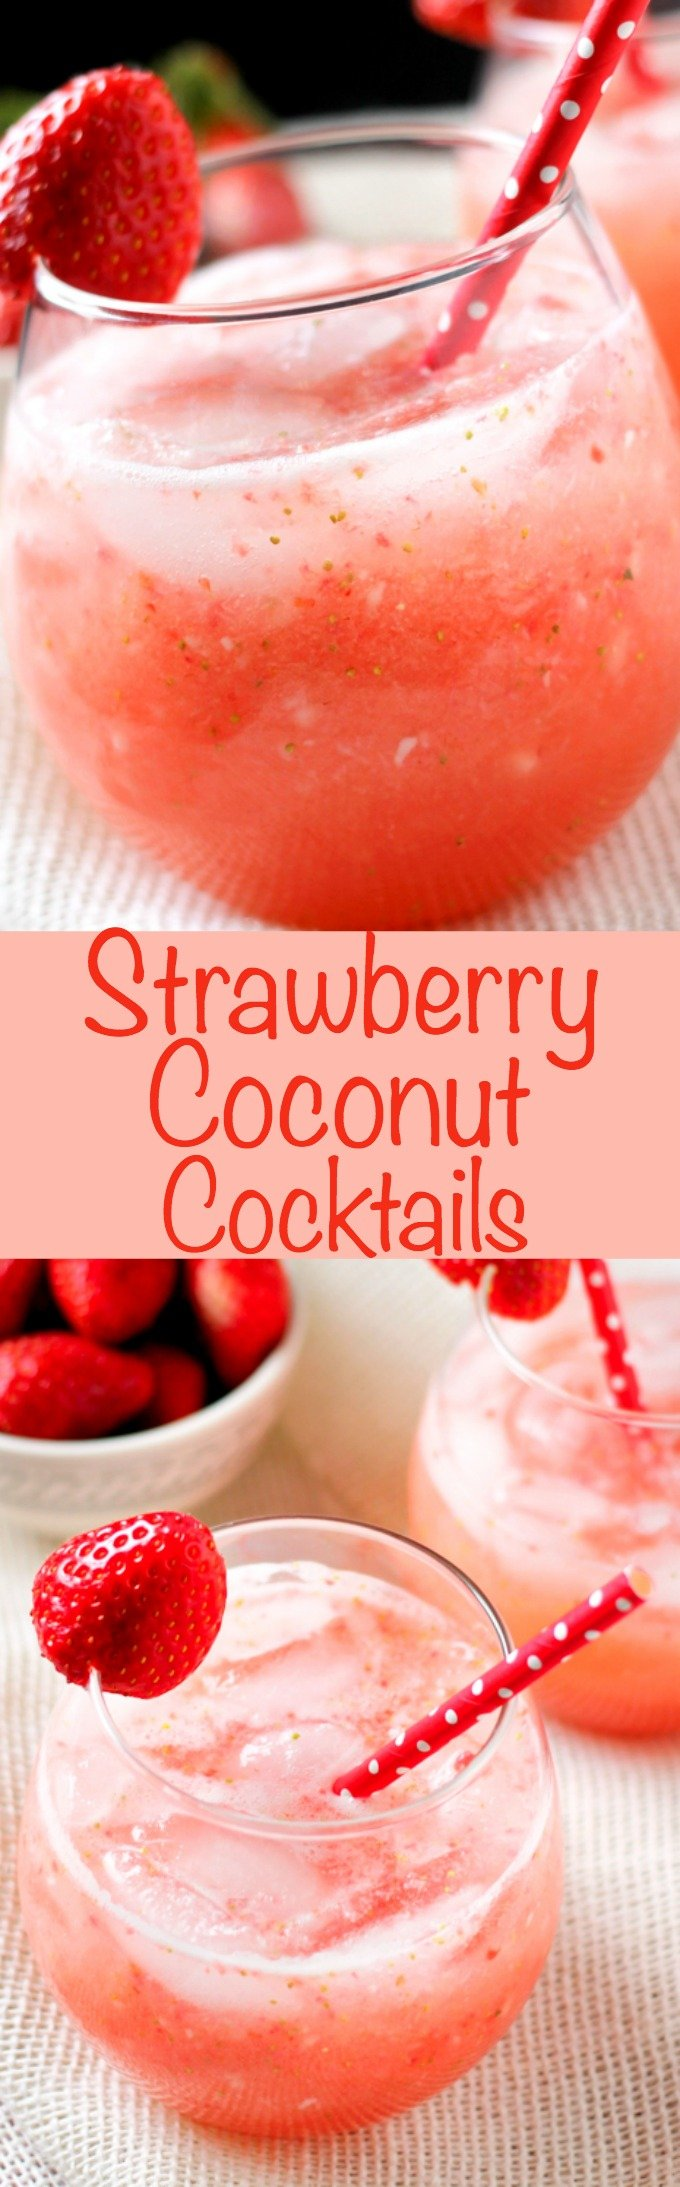 Strawberry Coconut Cocktail is the perfect refreshing cocktail! It's sweet and coconut-y! Only 4 ingredients and super easy to make!